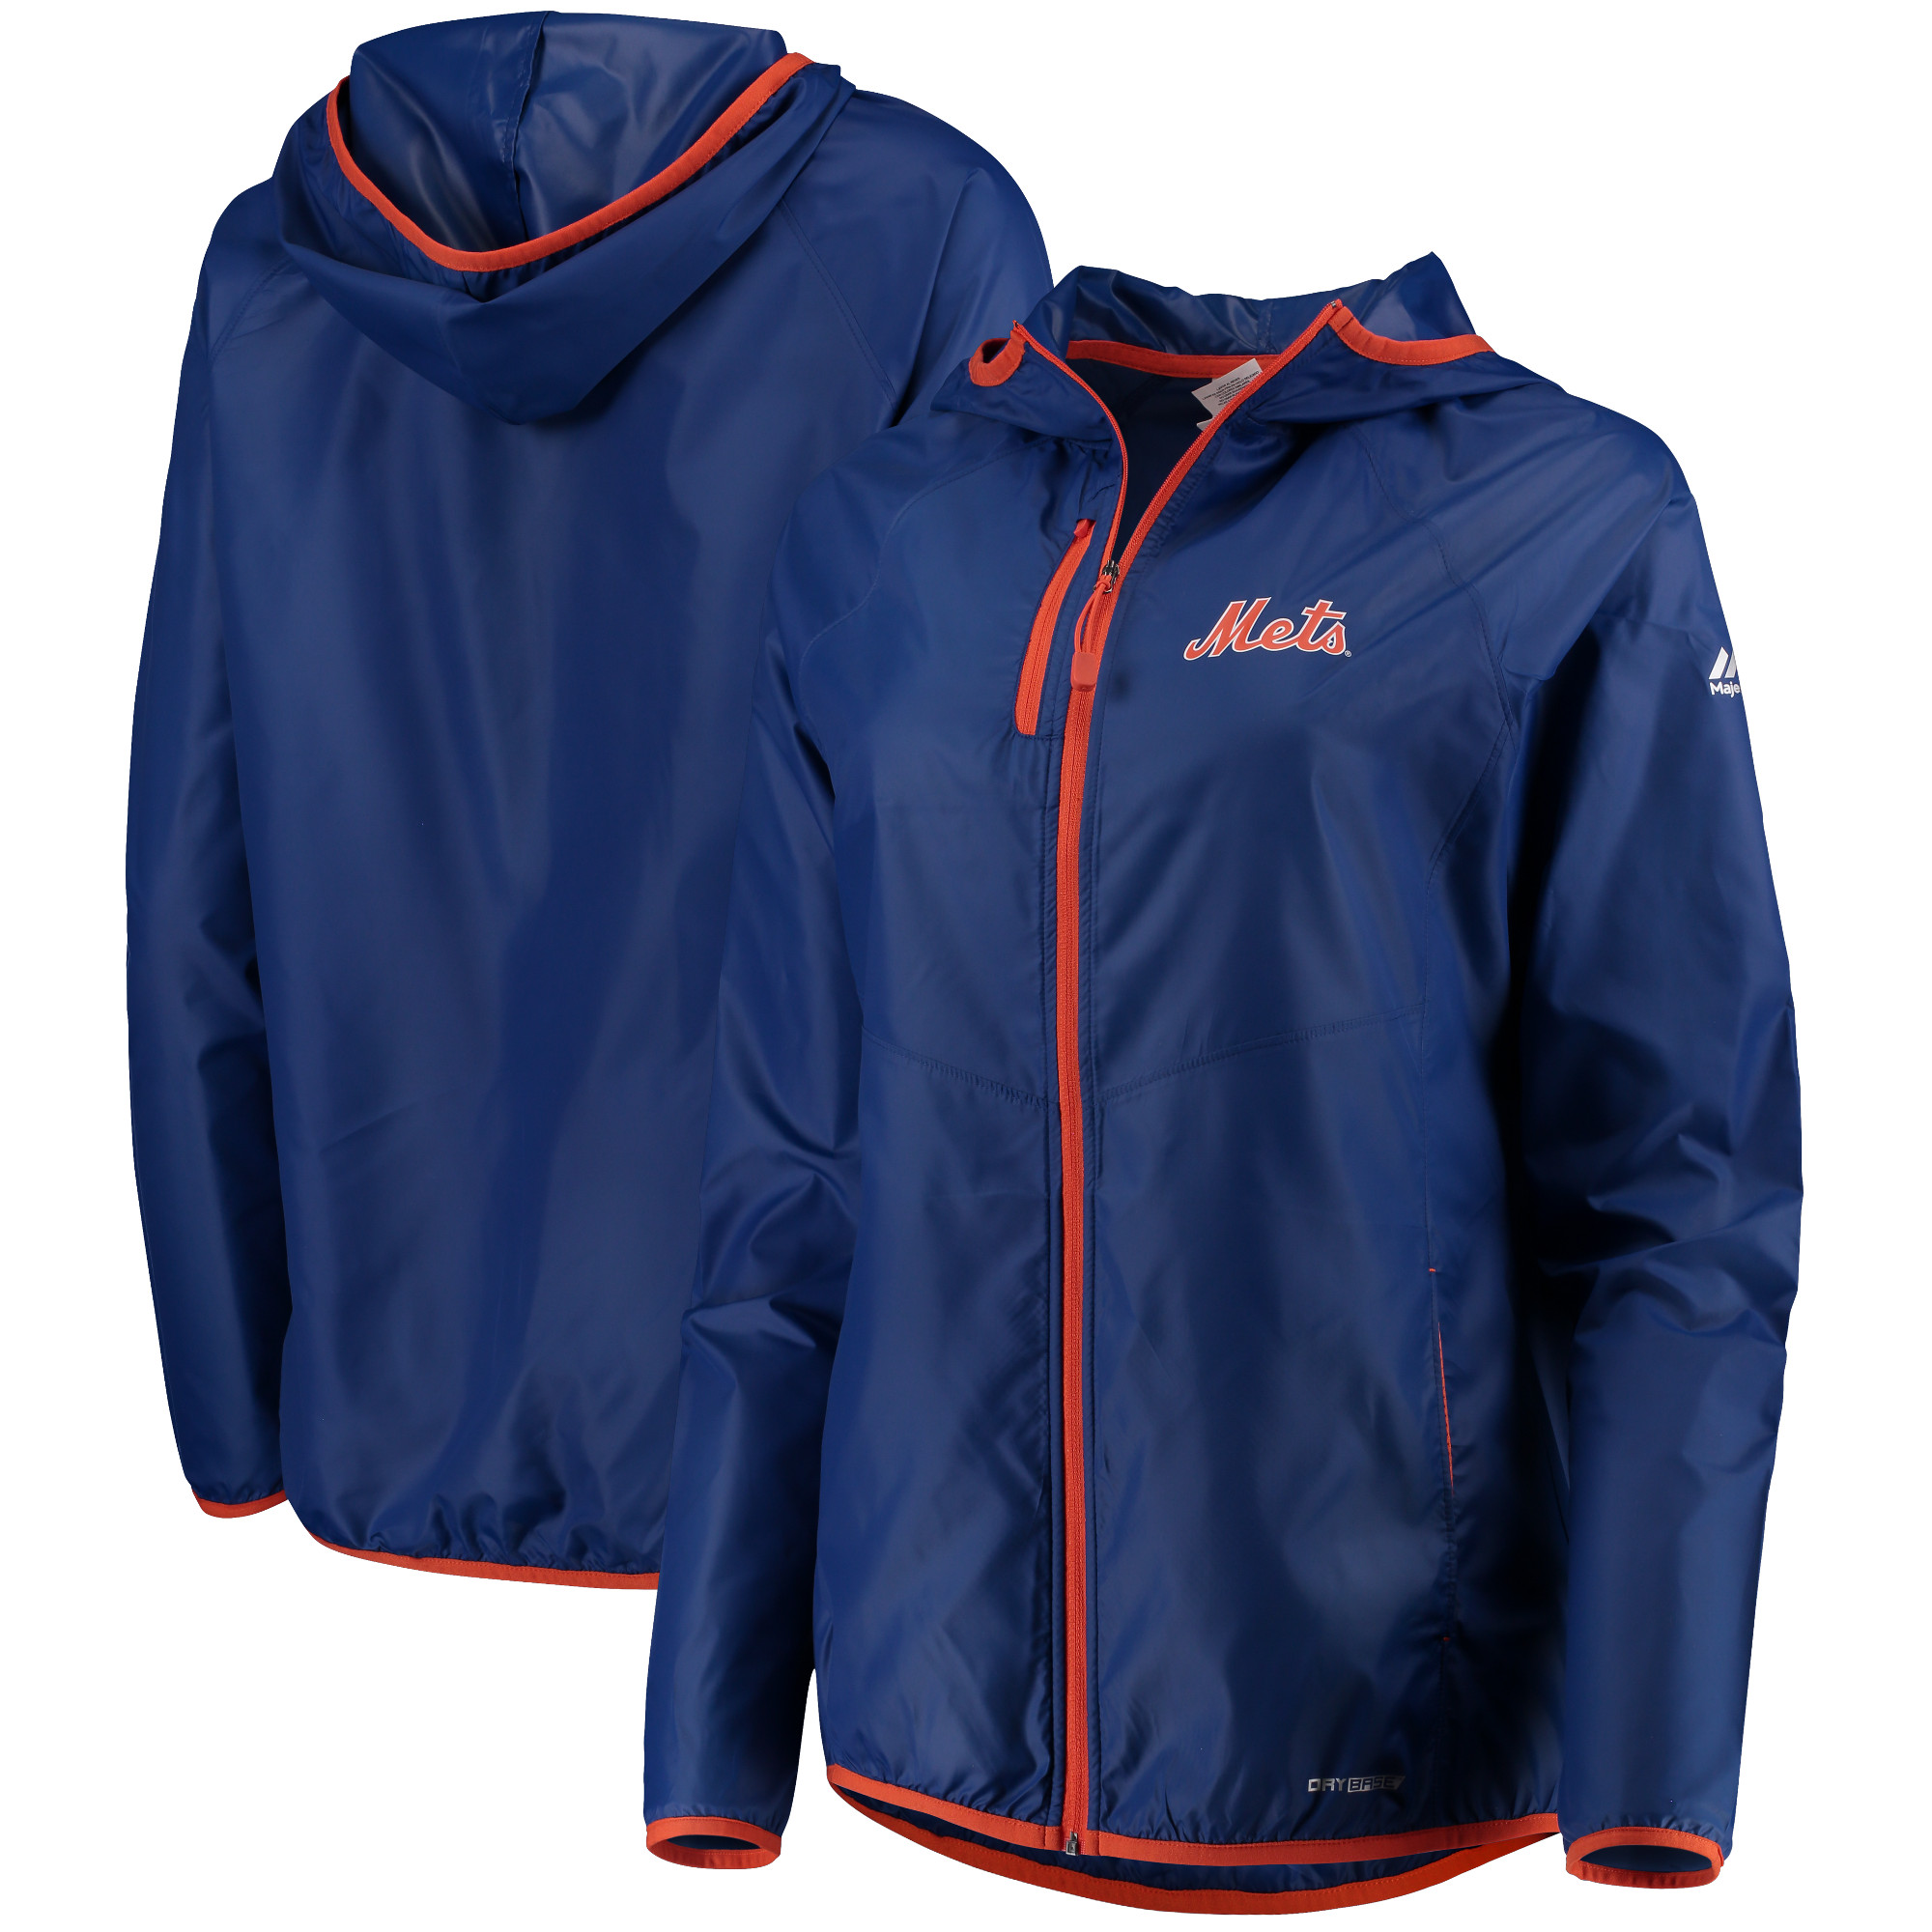 New York Mets Majestic Women's Absolute Dominance Full-Zip Jacket - Royal